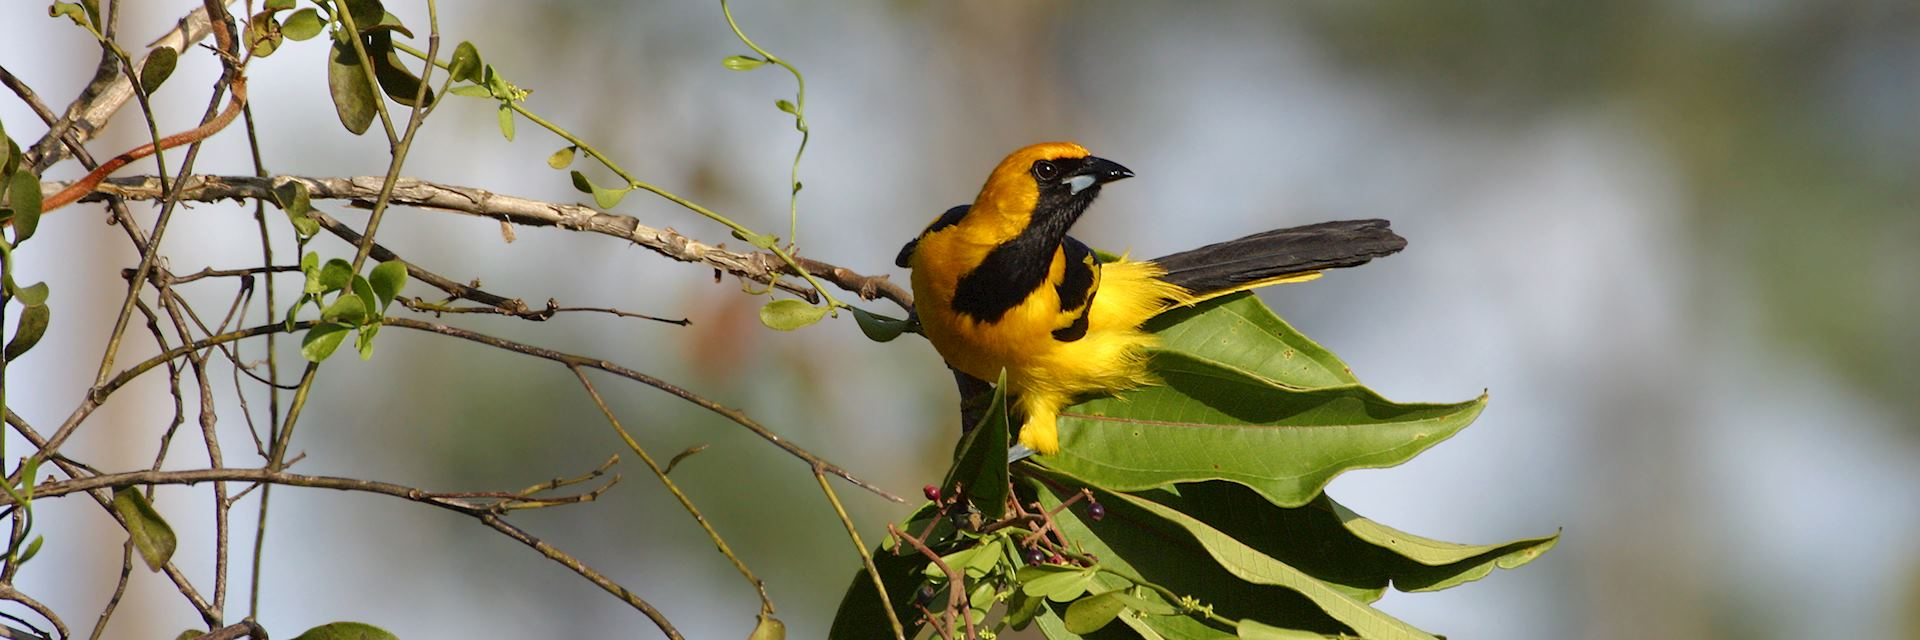 Yellow tailed oriole, Belize